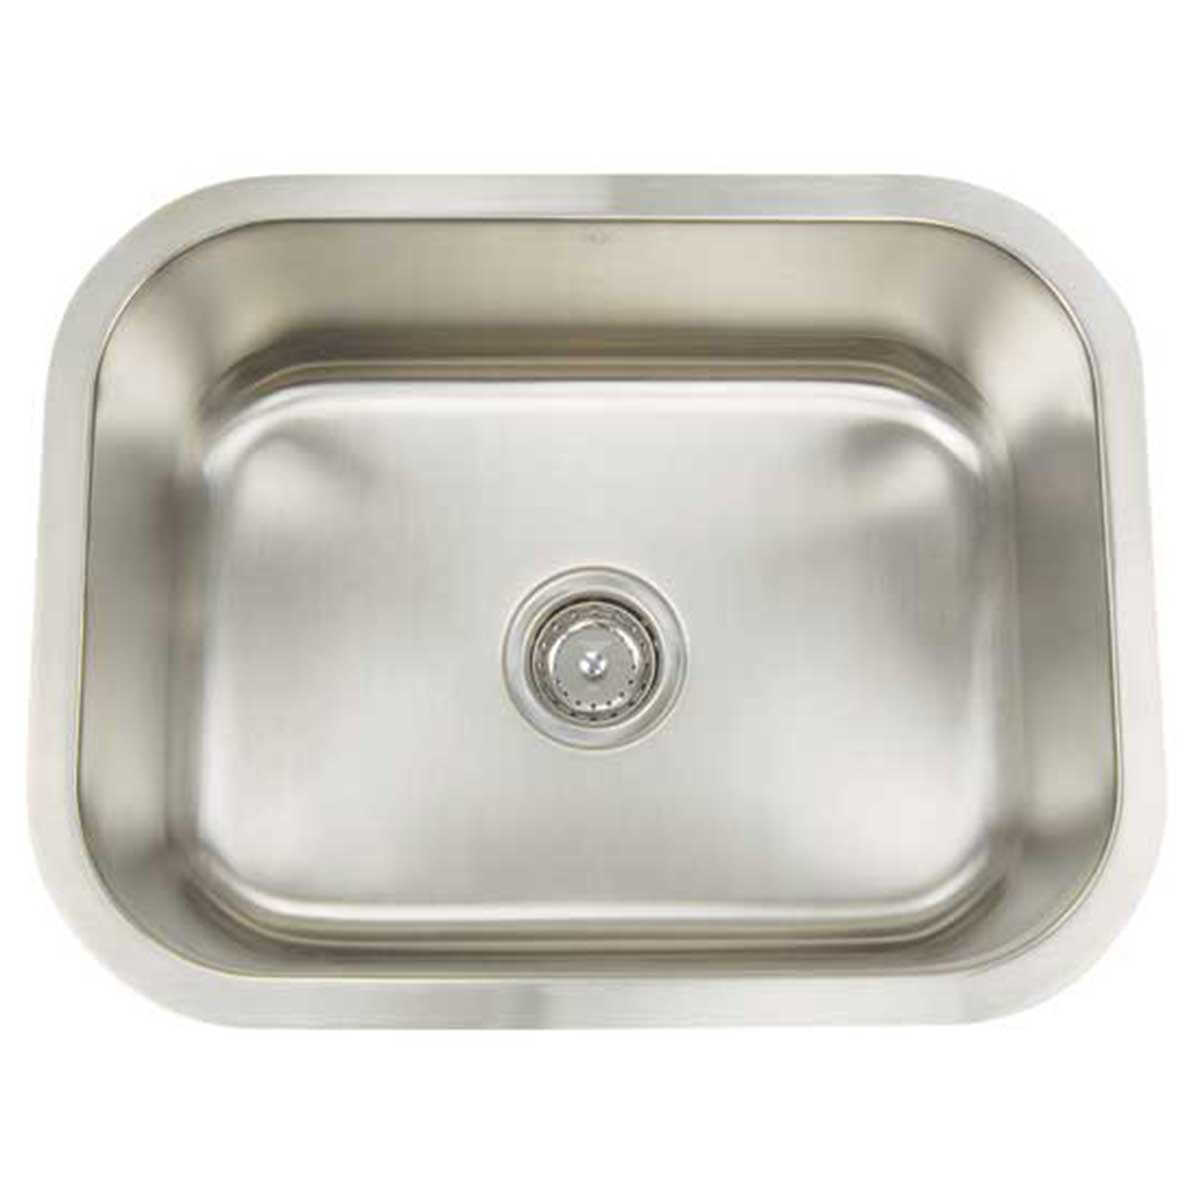 Artisan AR2318-D9 Premium Series Single Bowl Sink